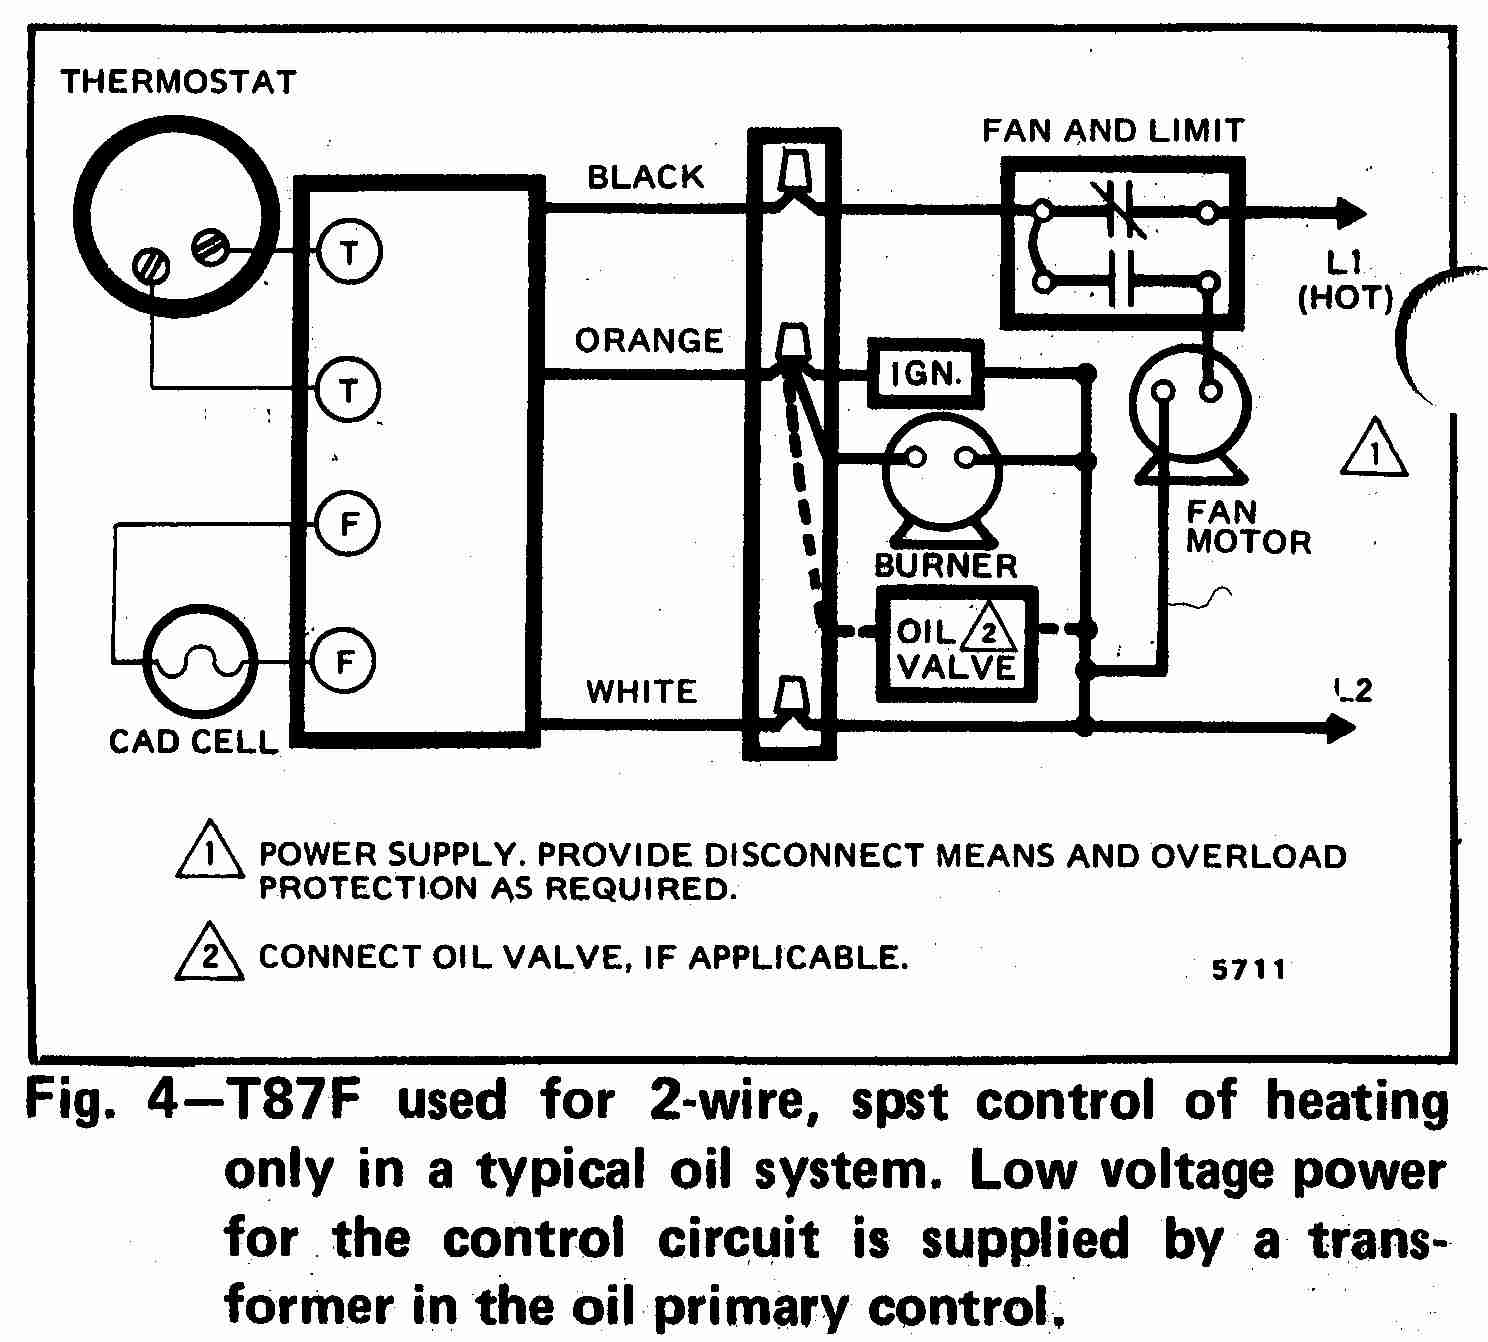 room thermostat wiring diagrams for hvac systems rh inspectapedia com Double Pole Thermostat Wiring Diagram Double Pole Thermostat Wiring Diagram